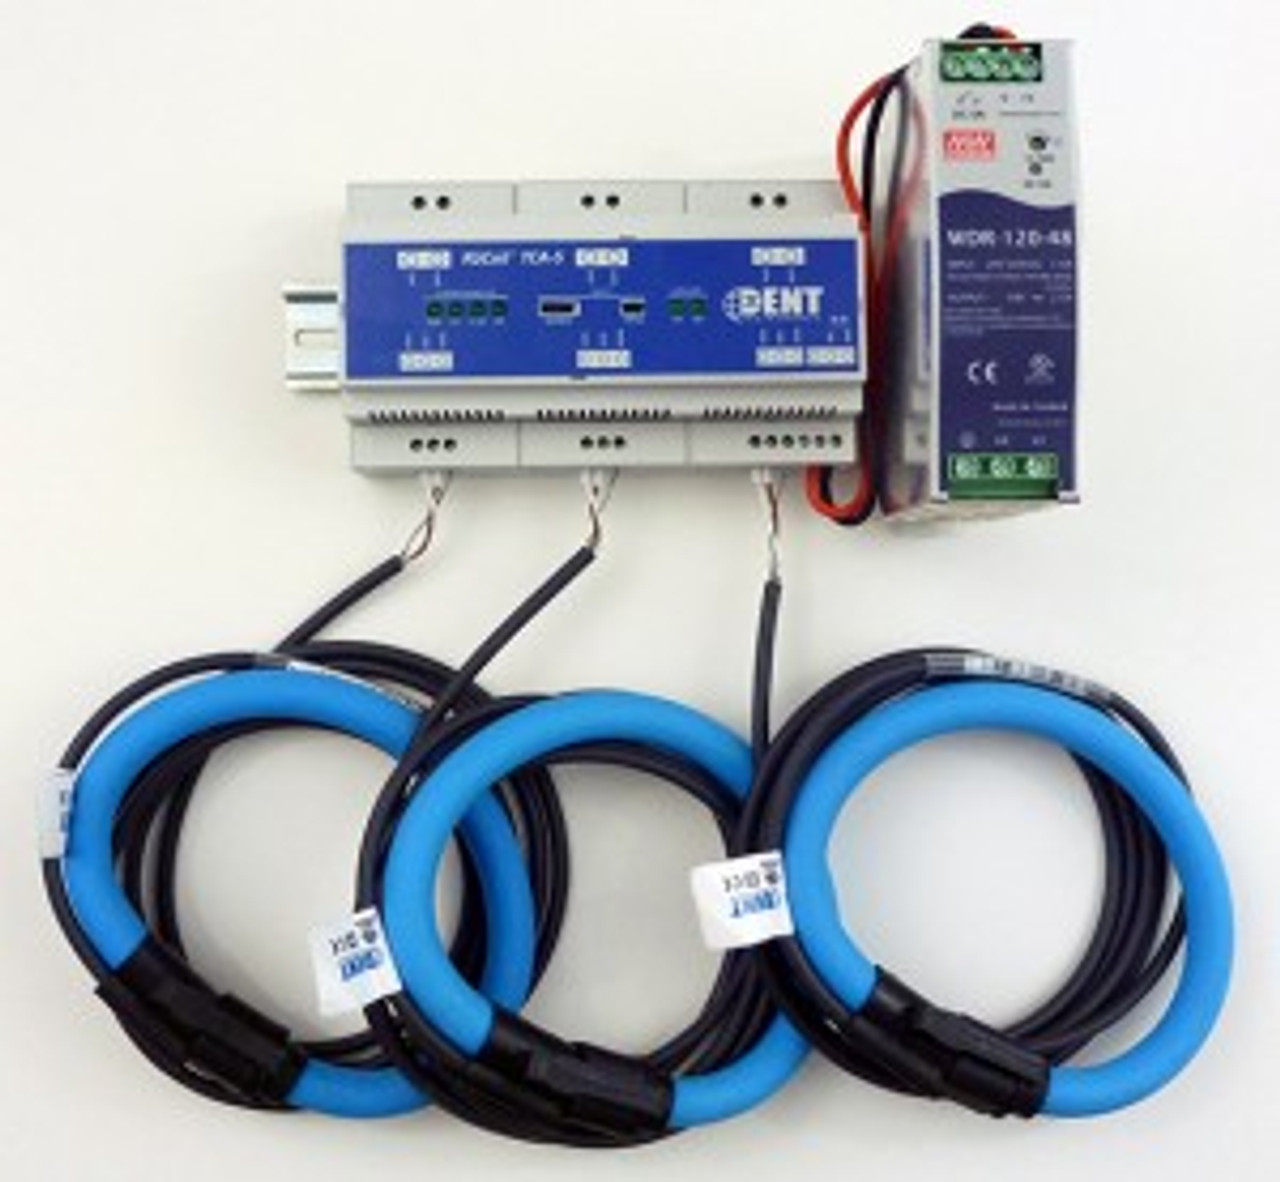 "Dent RoCoil TCA-5 with RoCoil 16"" flexible current sensors."